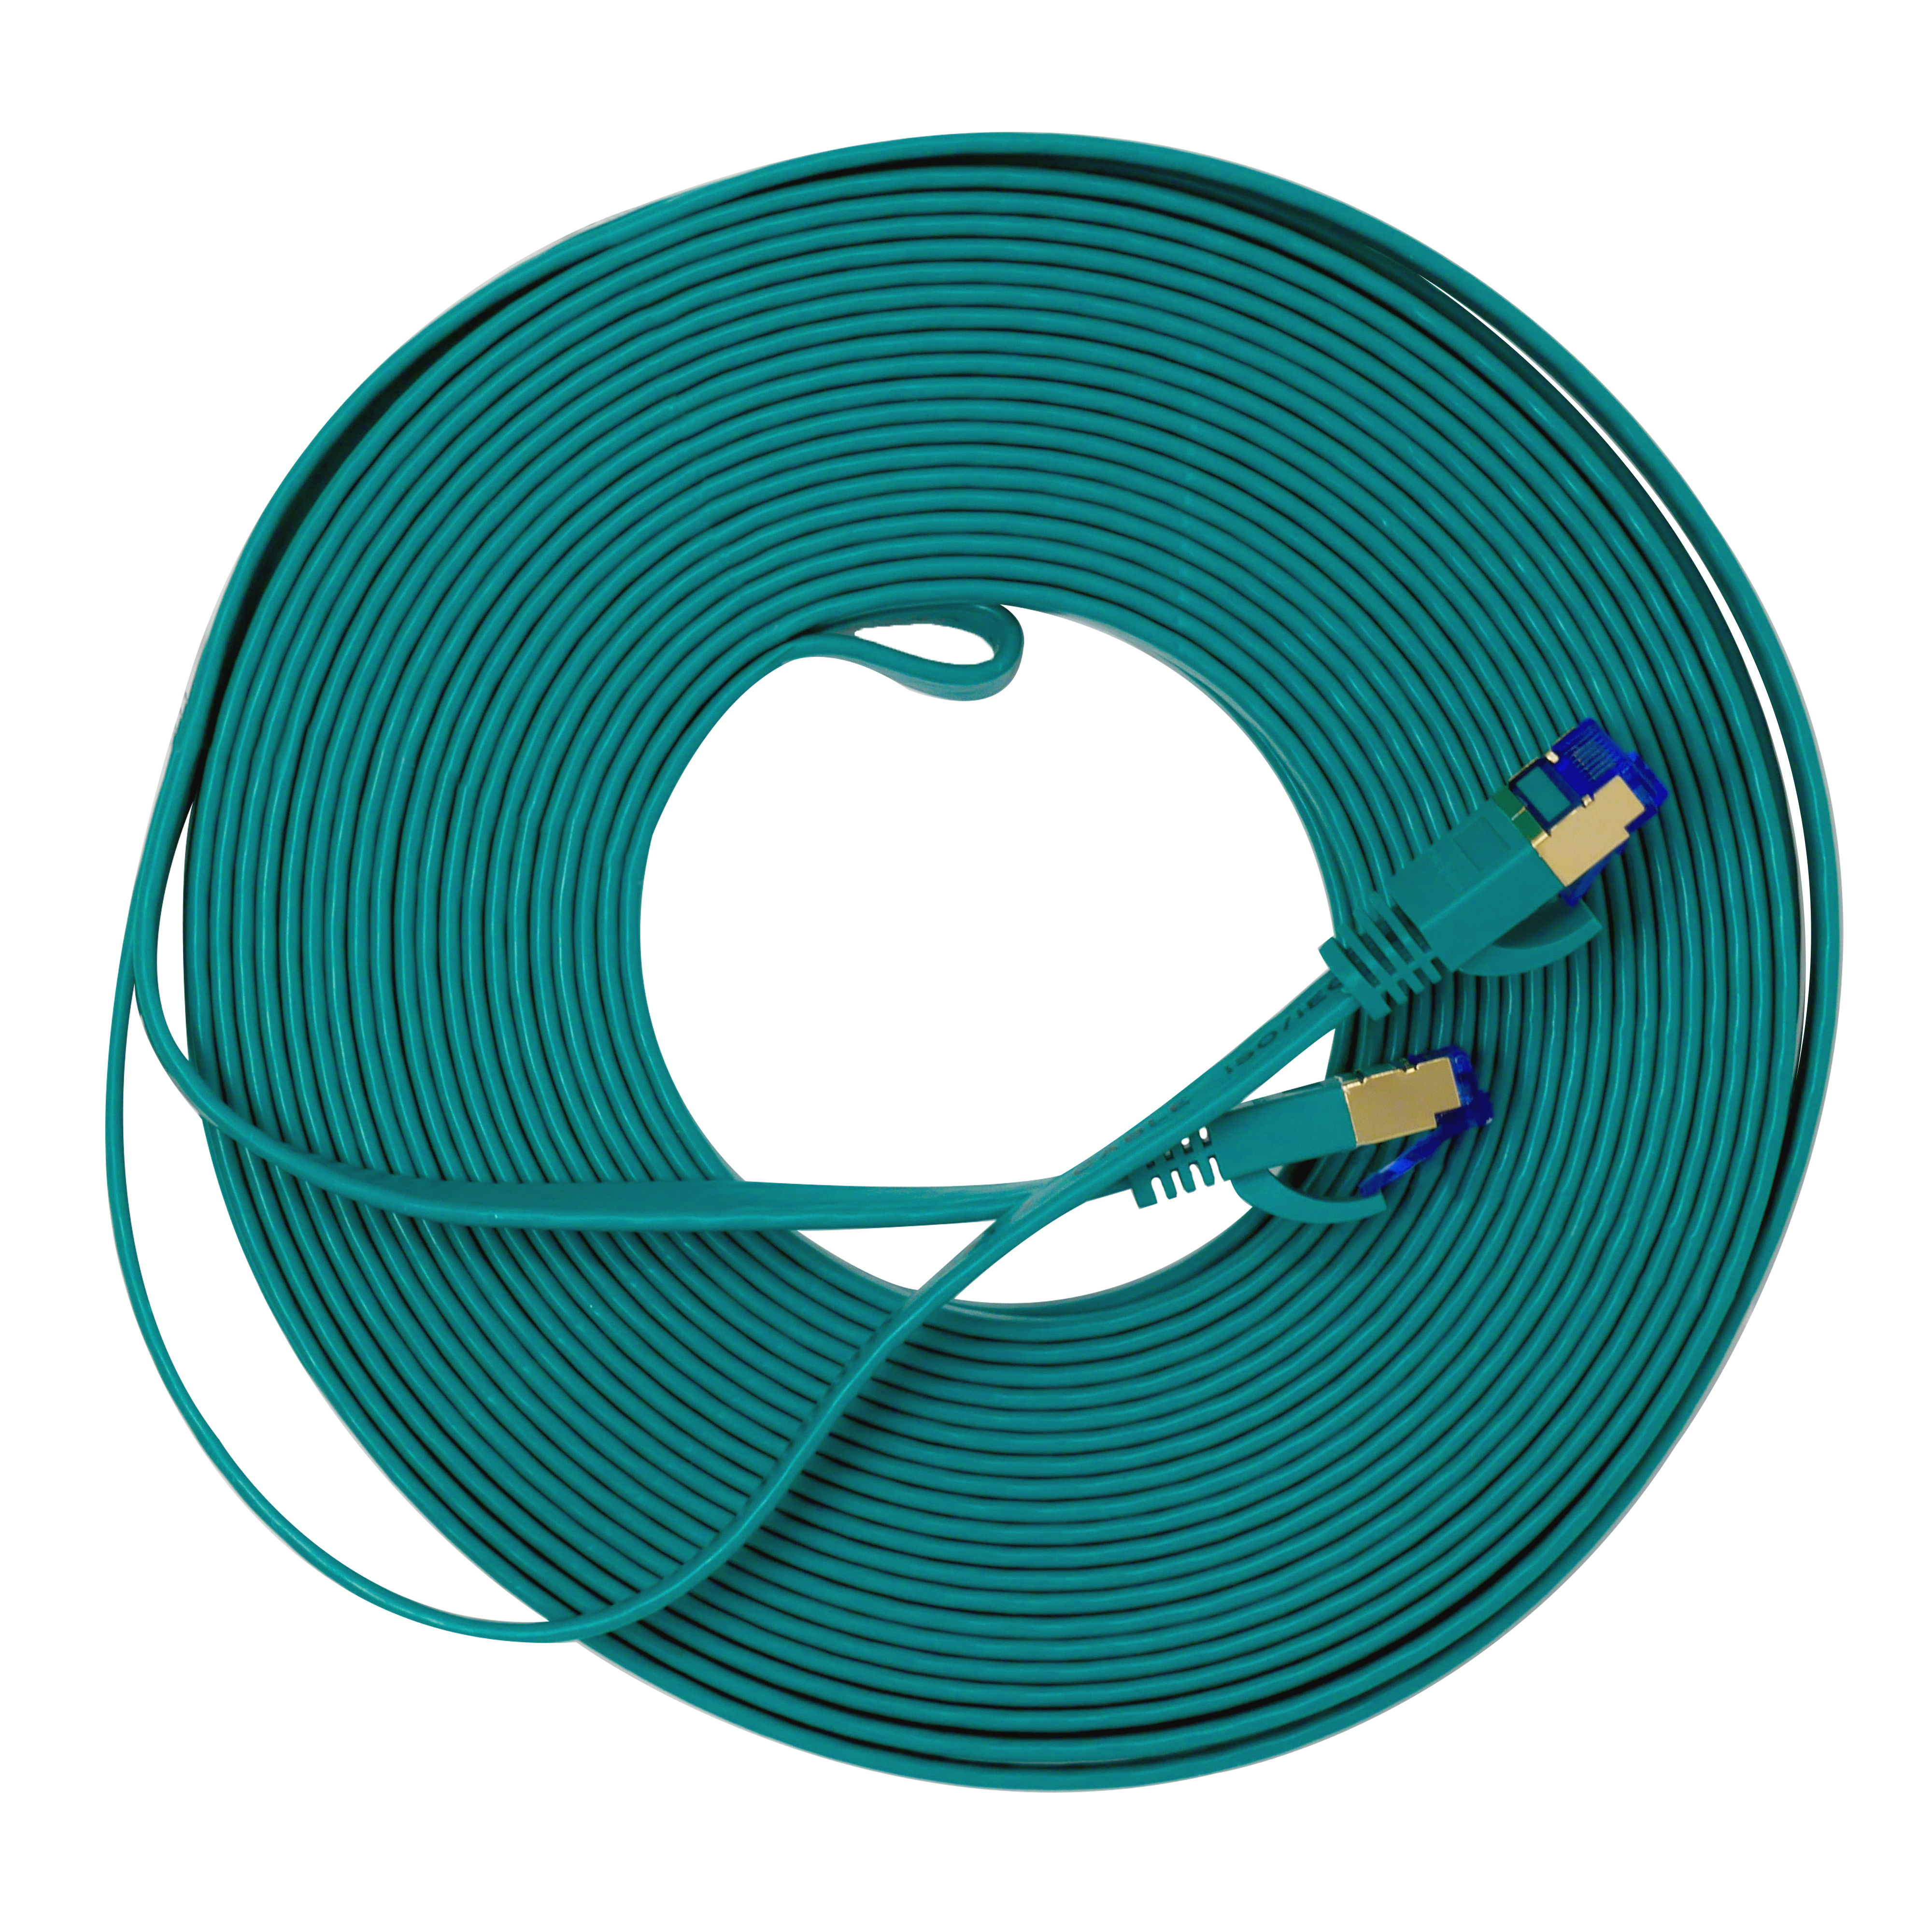 QualGear QG-CAT7F-50FT-GRN CAT 7 S/FTP Ethernet Cable Length 50 feet - 26 AWG, 10 Gbps, Gold Plated Contacts, RJ45, 99.99% OFC Copper, Color Green